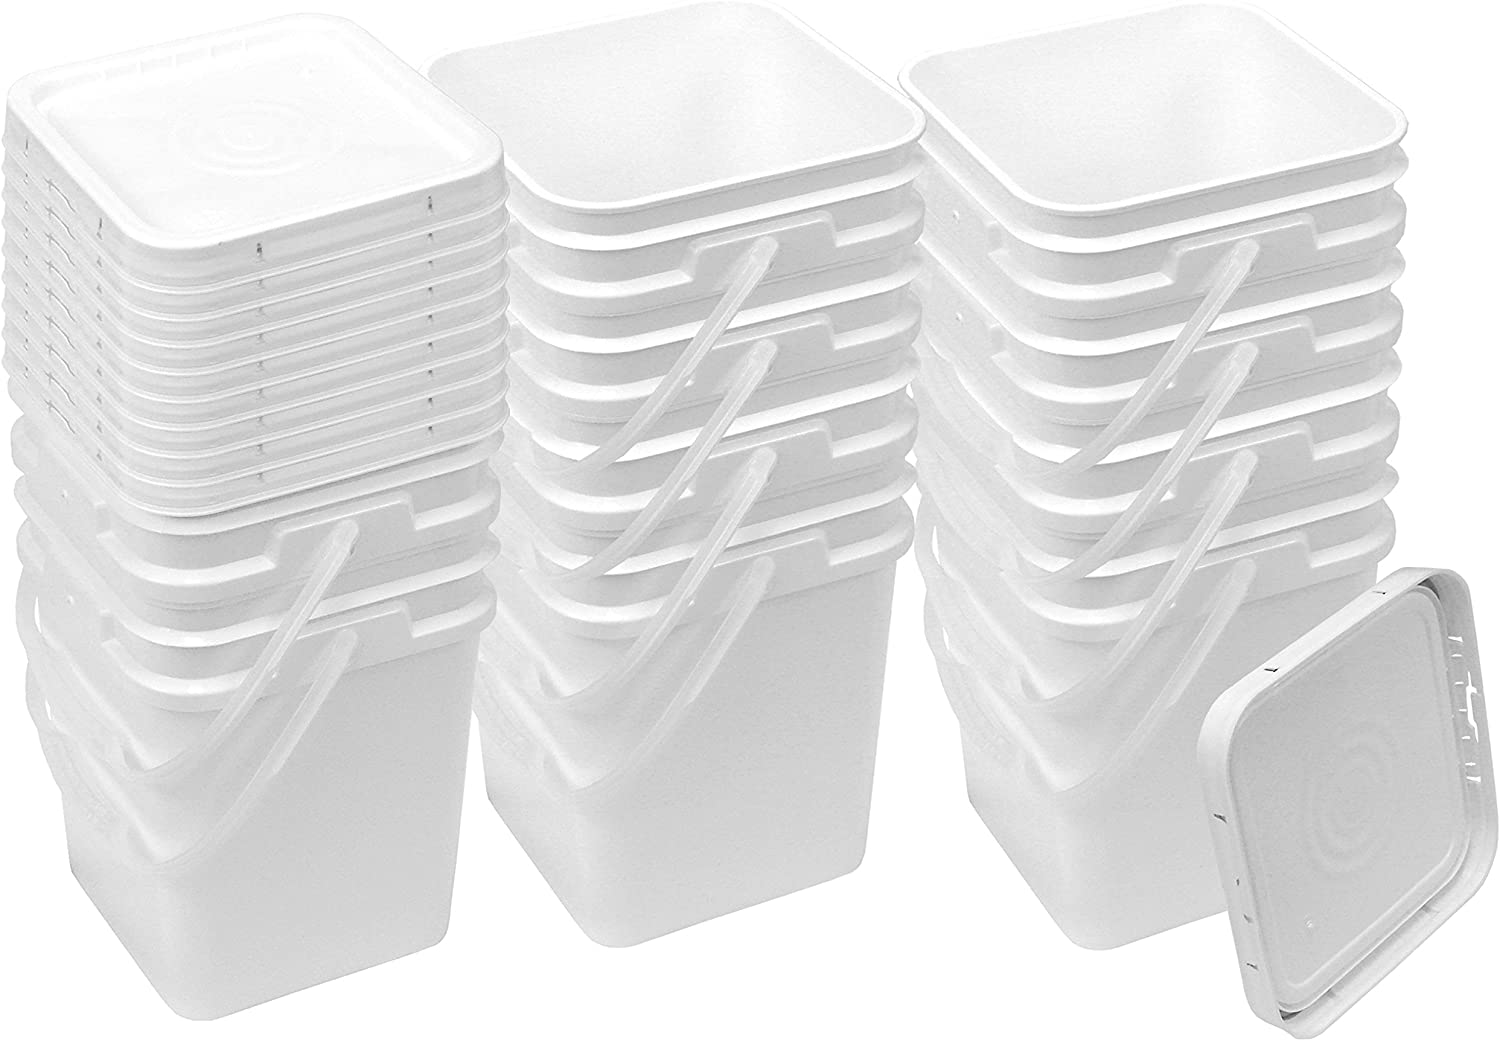 Square Bucket Kit, Ten 4-Gallon Buckets and ten White Snap-on Lids with gaskets